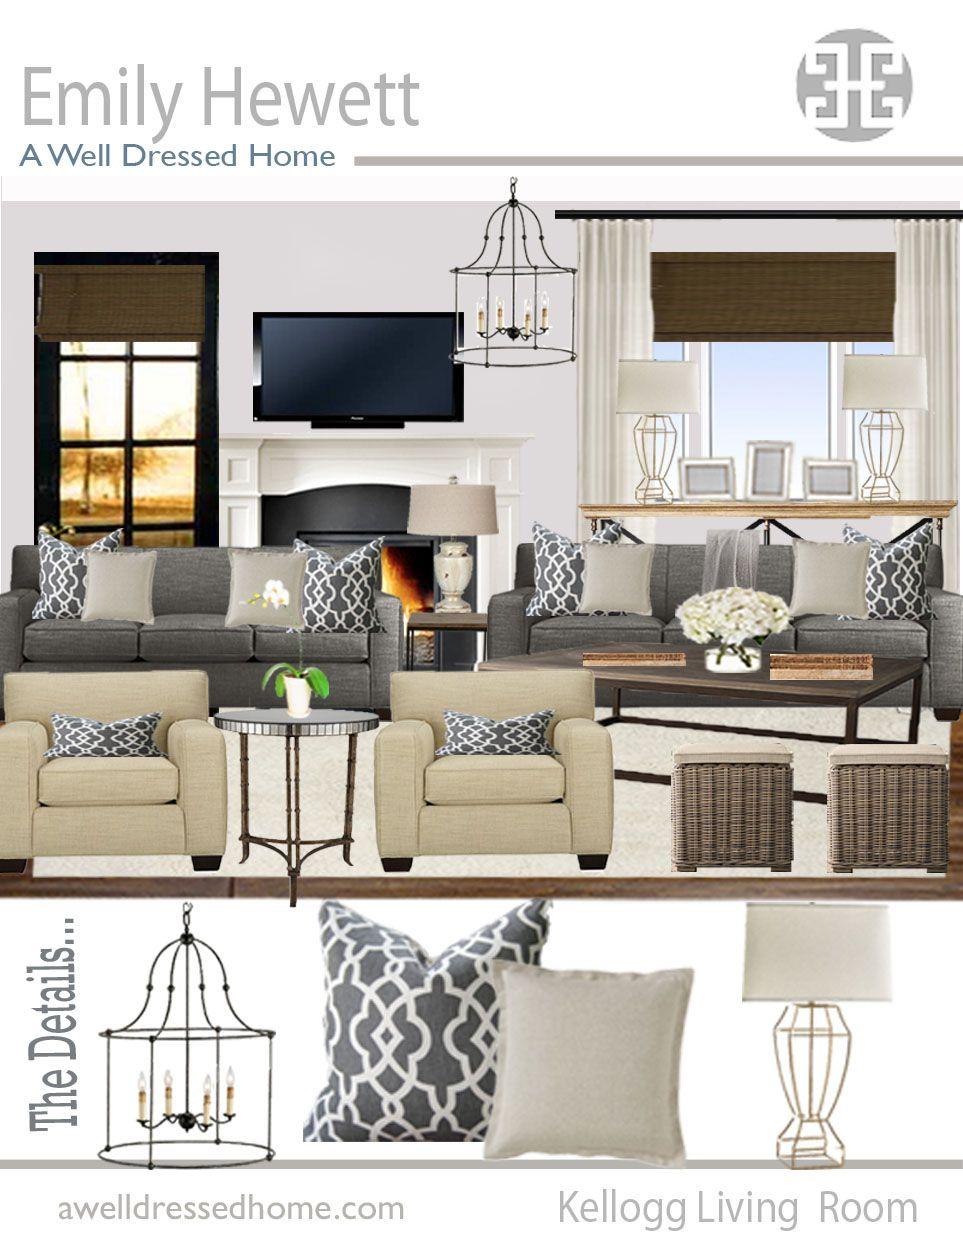 Design your living room online free design your own living for Design your own room online free